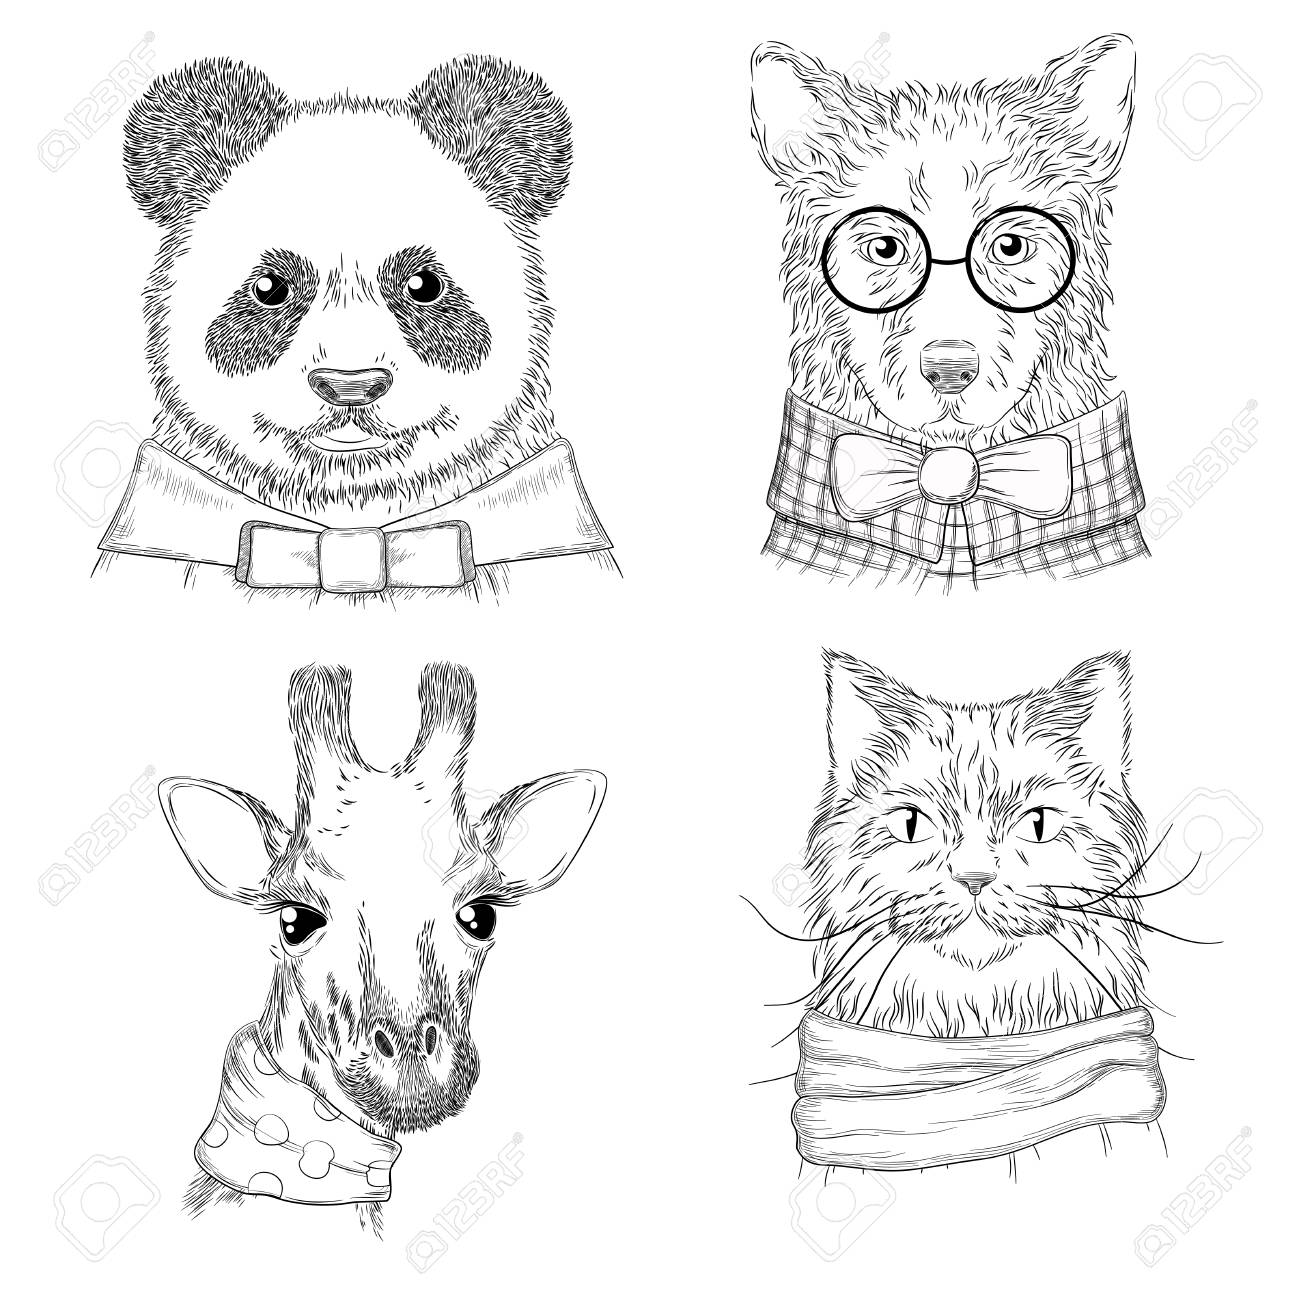 Hipster animals fashion adult illustrations wild animals in various clothes vector hand drawn sketches